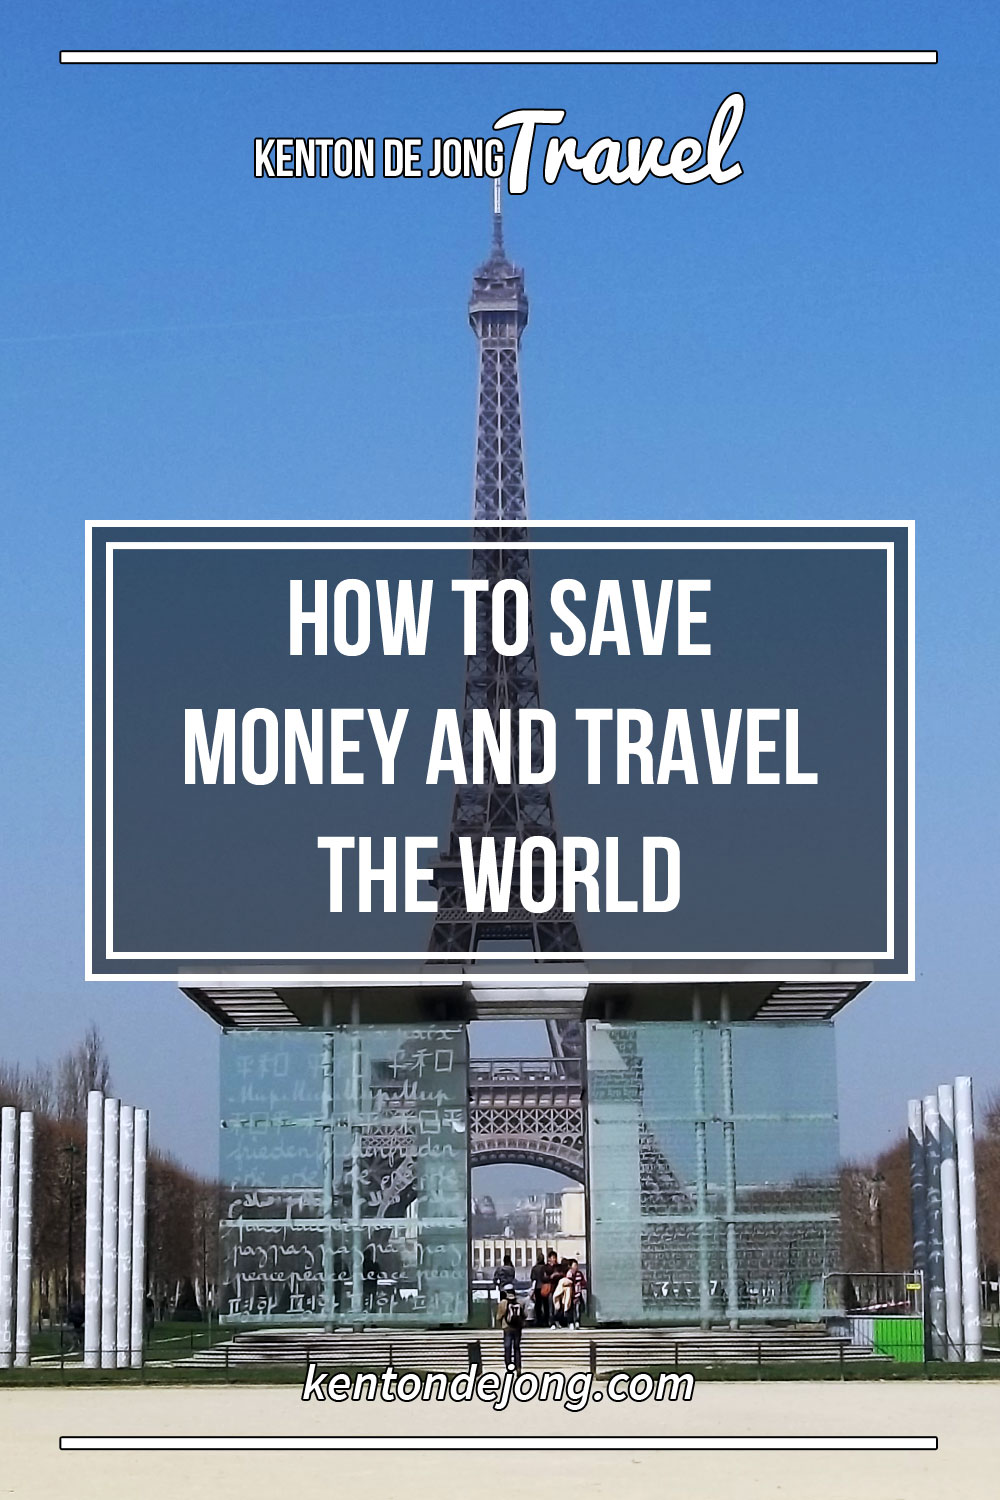 How to Save Money and Travel the World